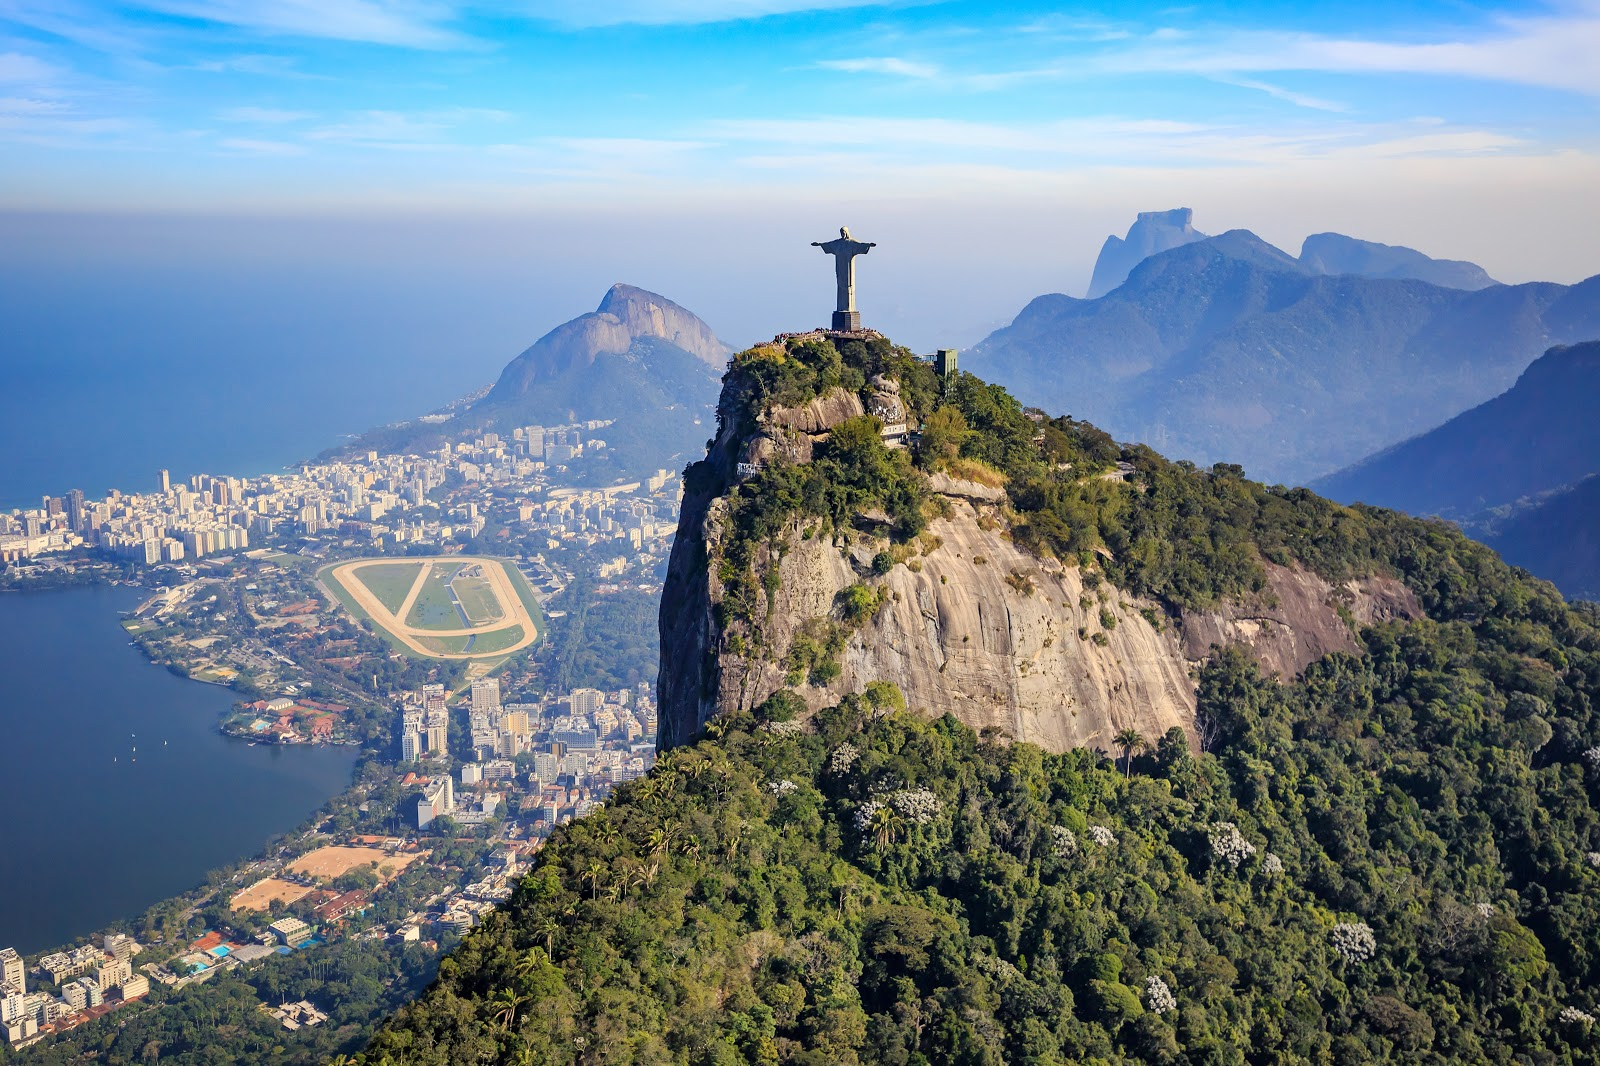 Brazil is one of the locations where the best coffee in the world can be found